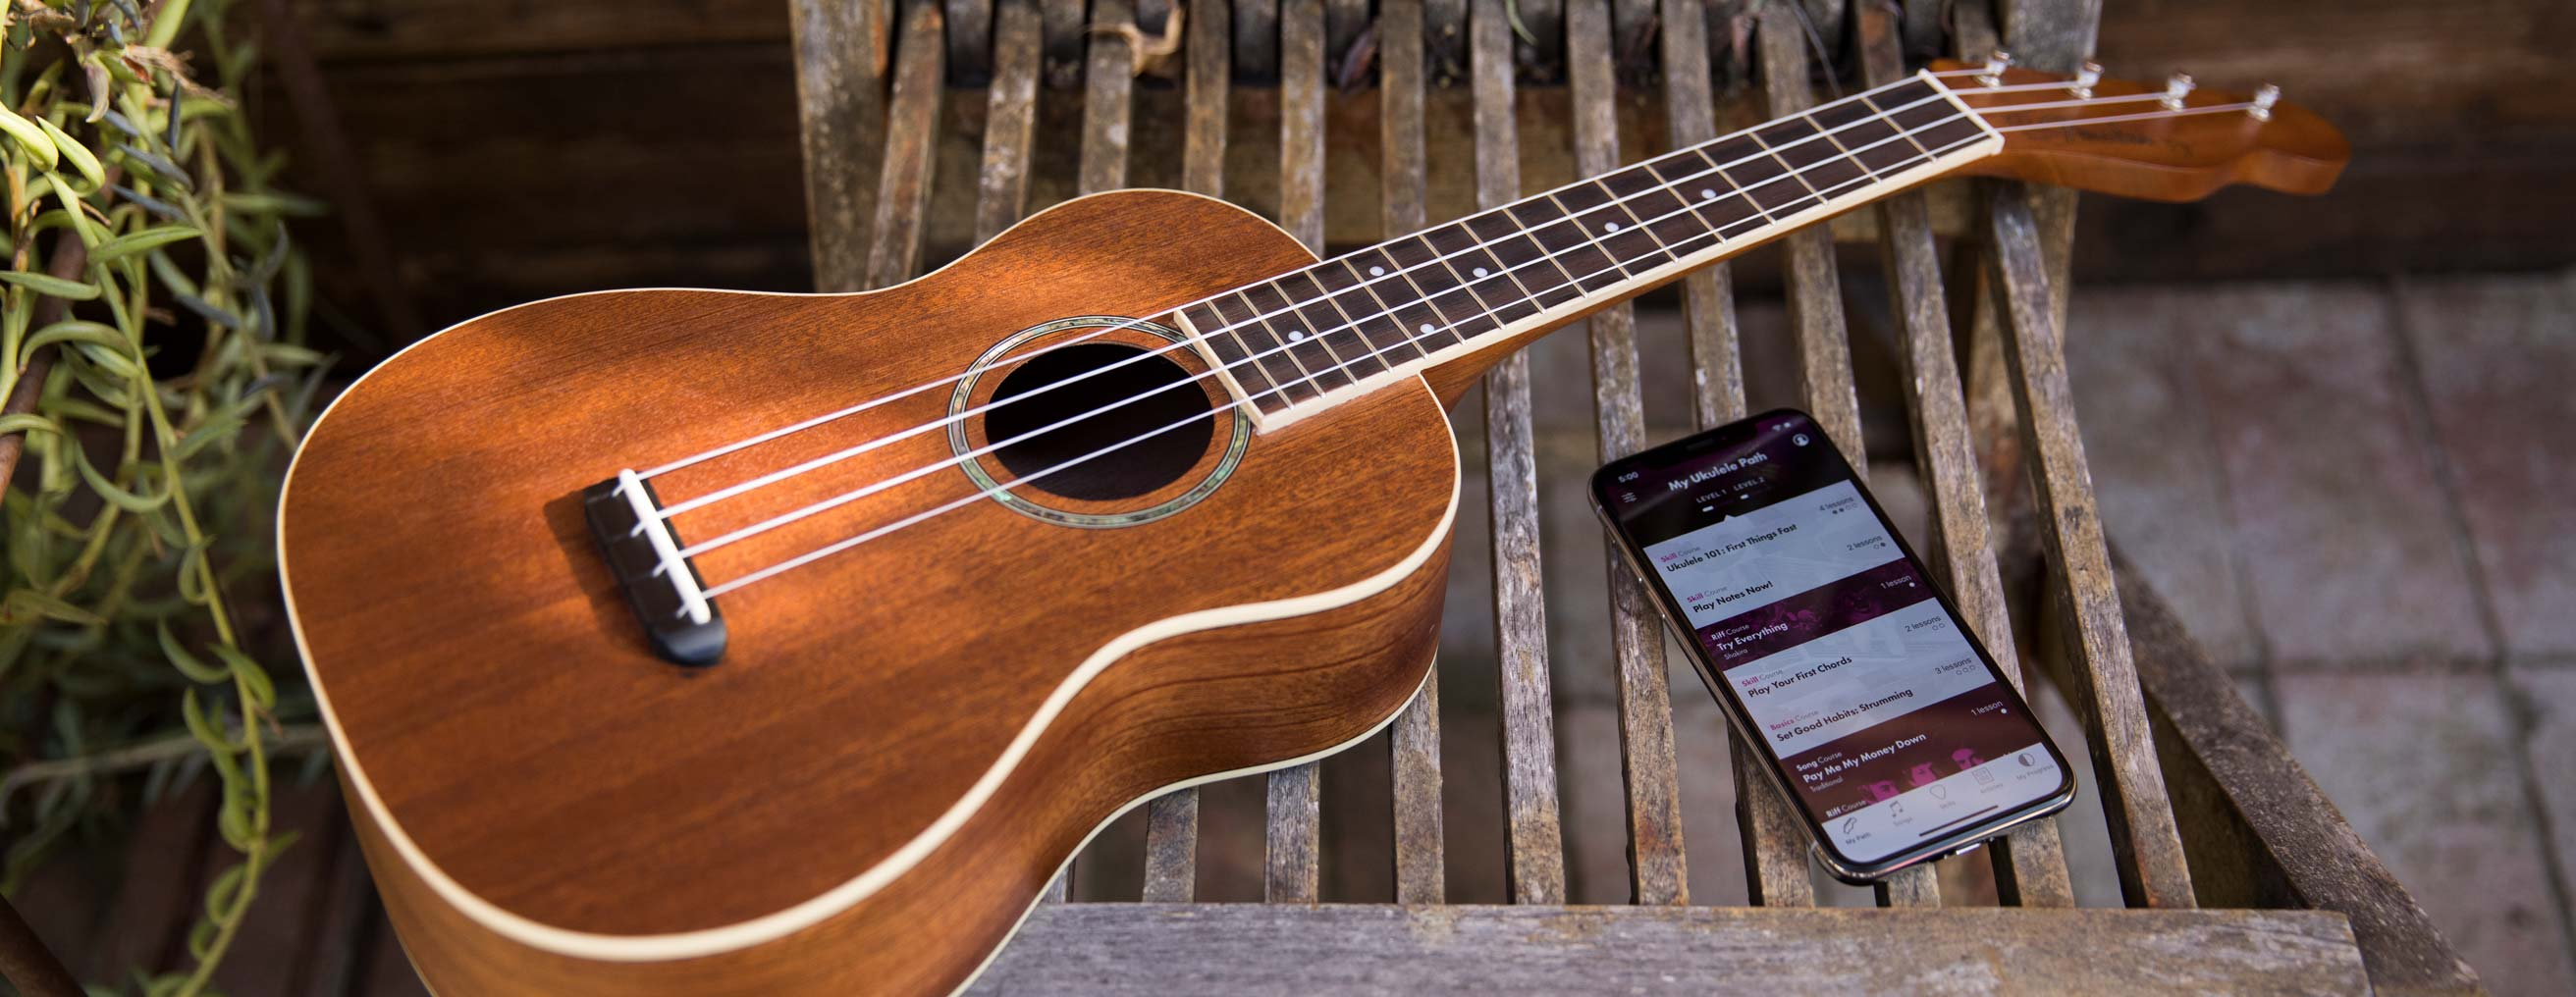 7 Reasons To Play The Ukulele Learn How To Play Fender Guitars